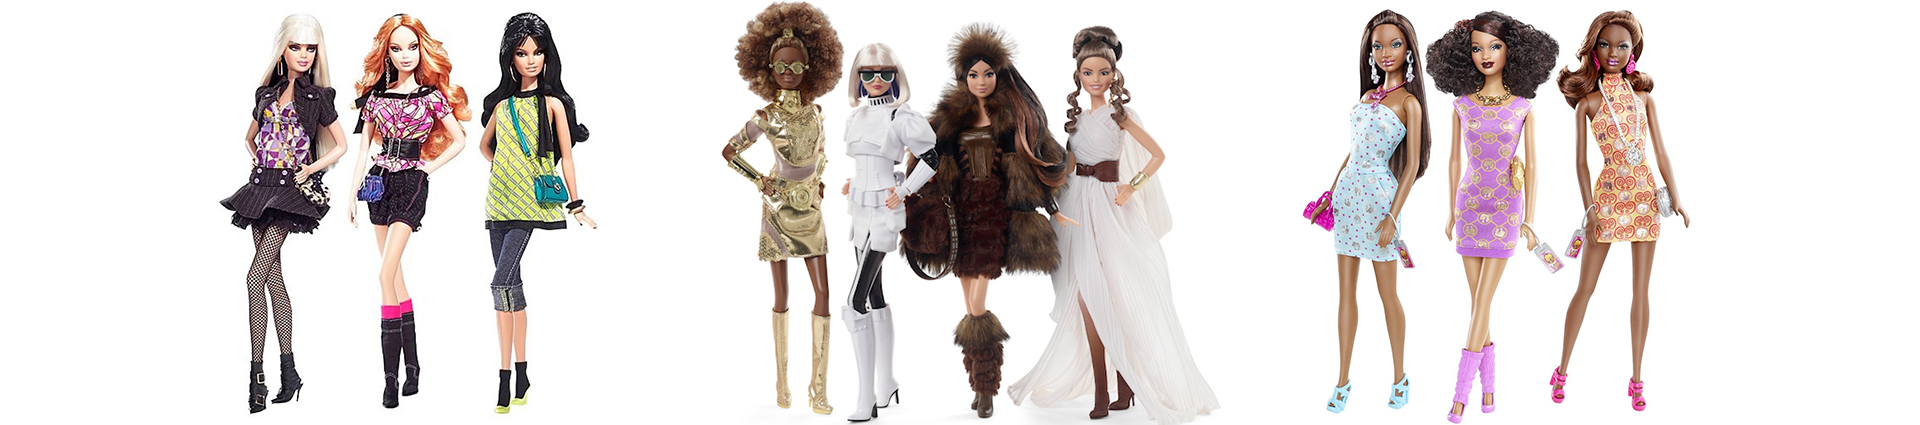 Barbie_Collection So In Style Star Wars Top Model